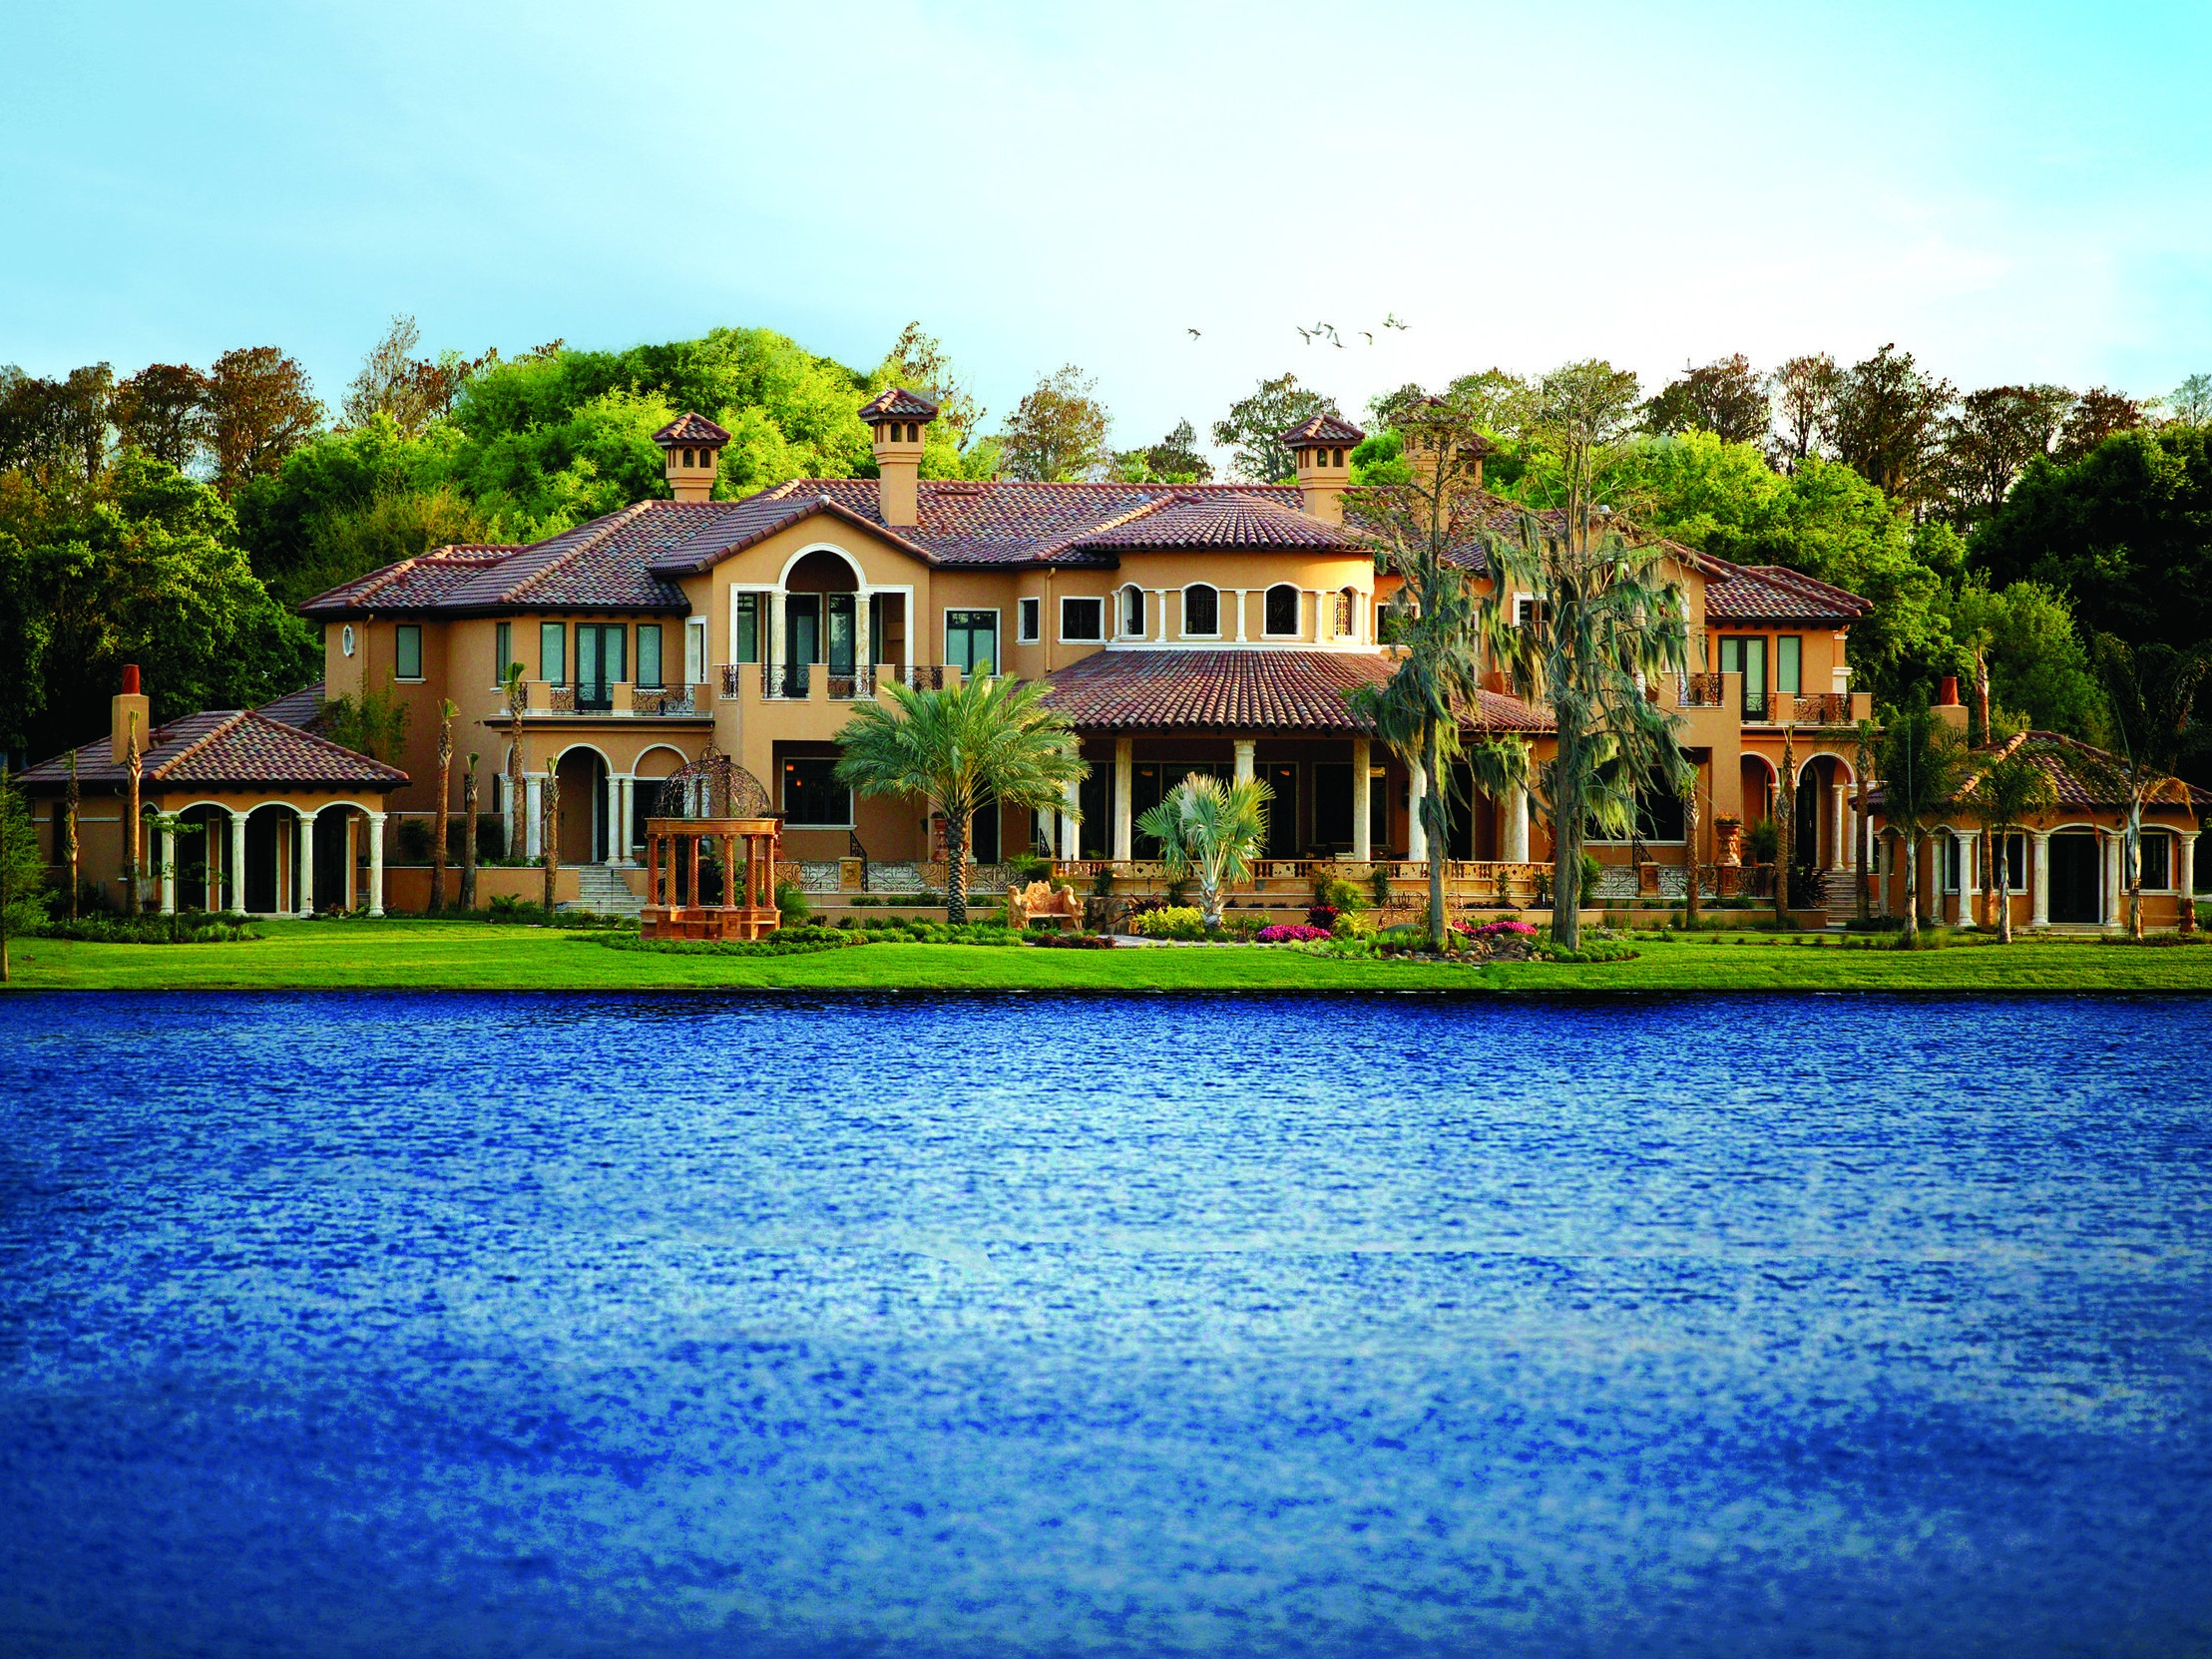 CURRENT LISTINGS - Isleworth offers extraordinary estate homes and home sites set among grand cypress and oak trees and surrounded by Central Florida's renowned Butler Chain of Lakes. Whether overlooking the championship golf course or set along one of the seven miles of shoreline, Isleworth provides an unmatched combination of architecture, amenities, service and security.